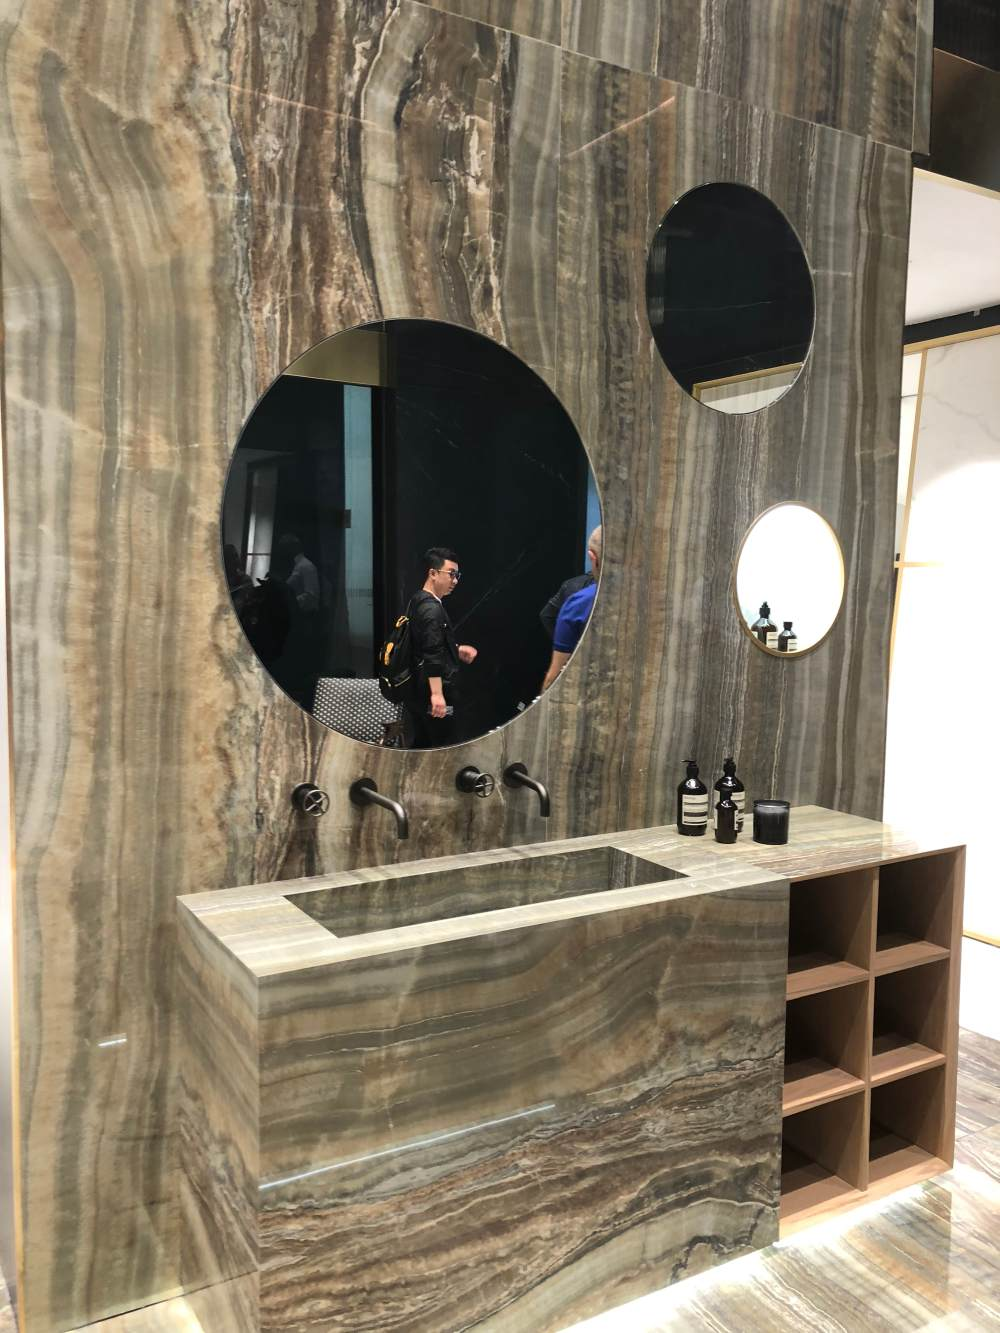 A bathroom vanity can either stand out and become a focal point or it can blend in with the wall behind it and the rest of the bathroom